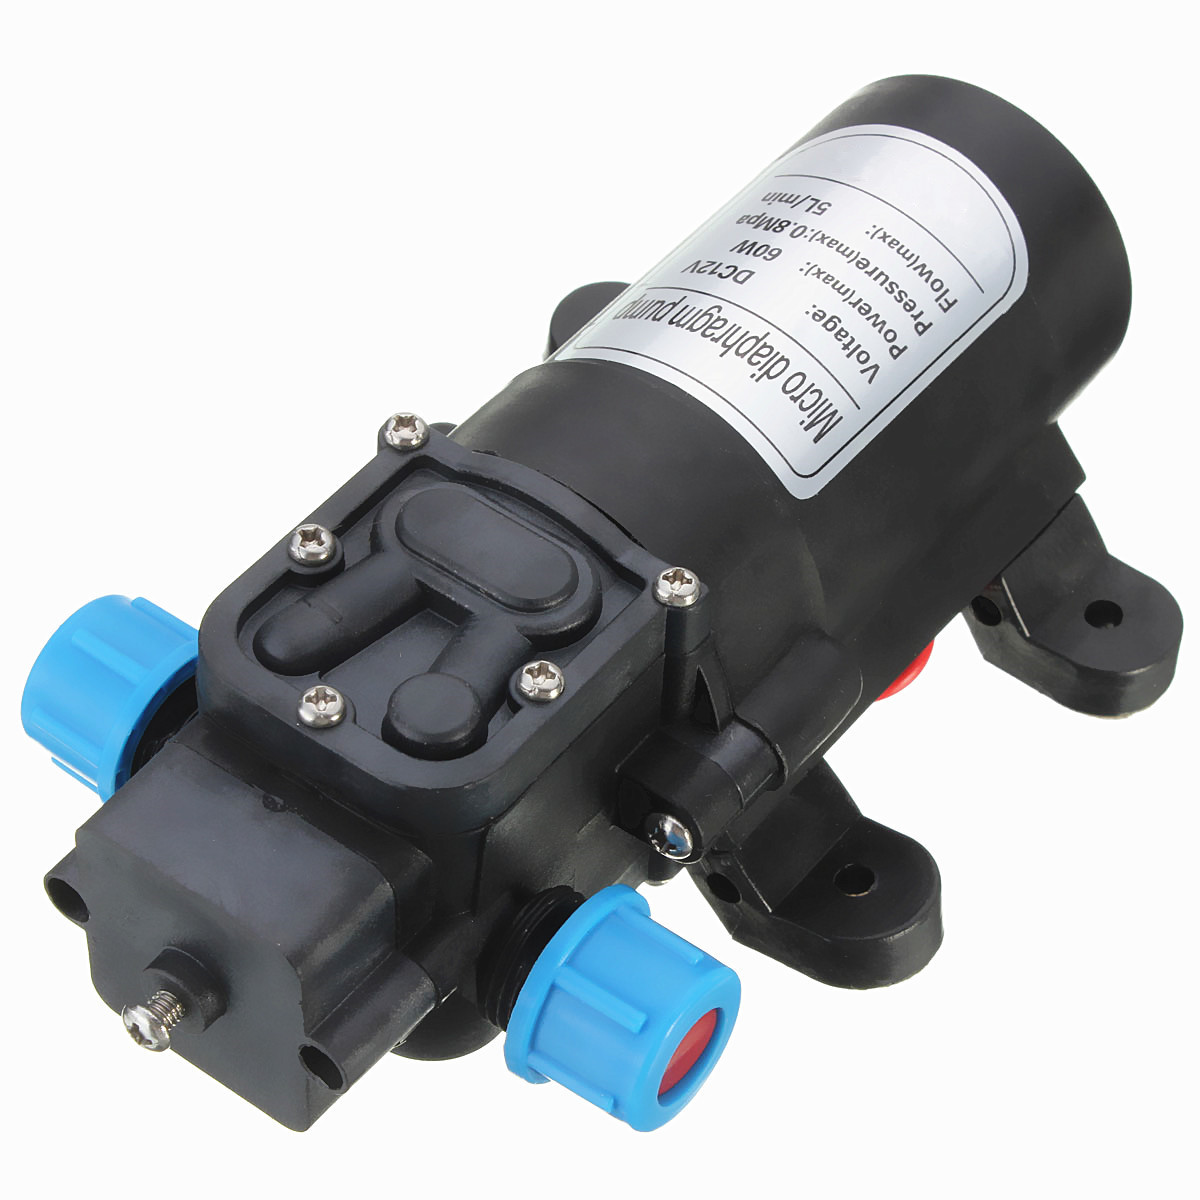 user guide water pump shurflo 2093-204